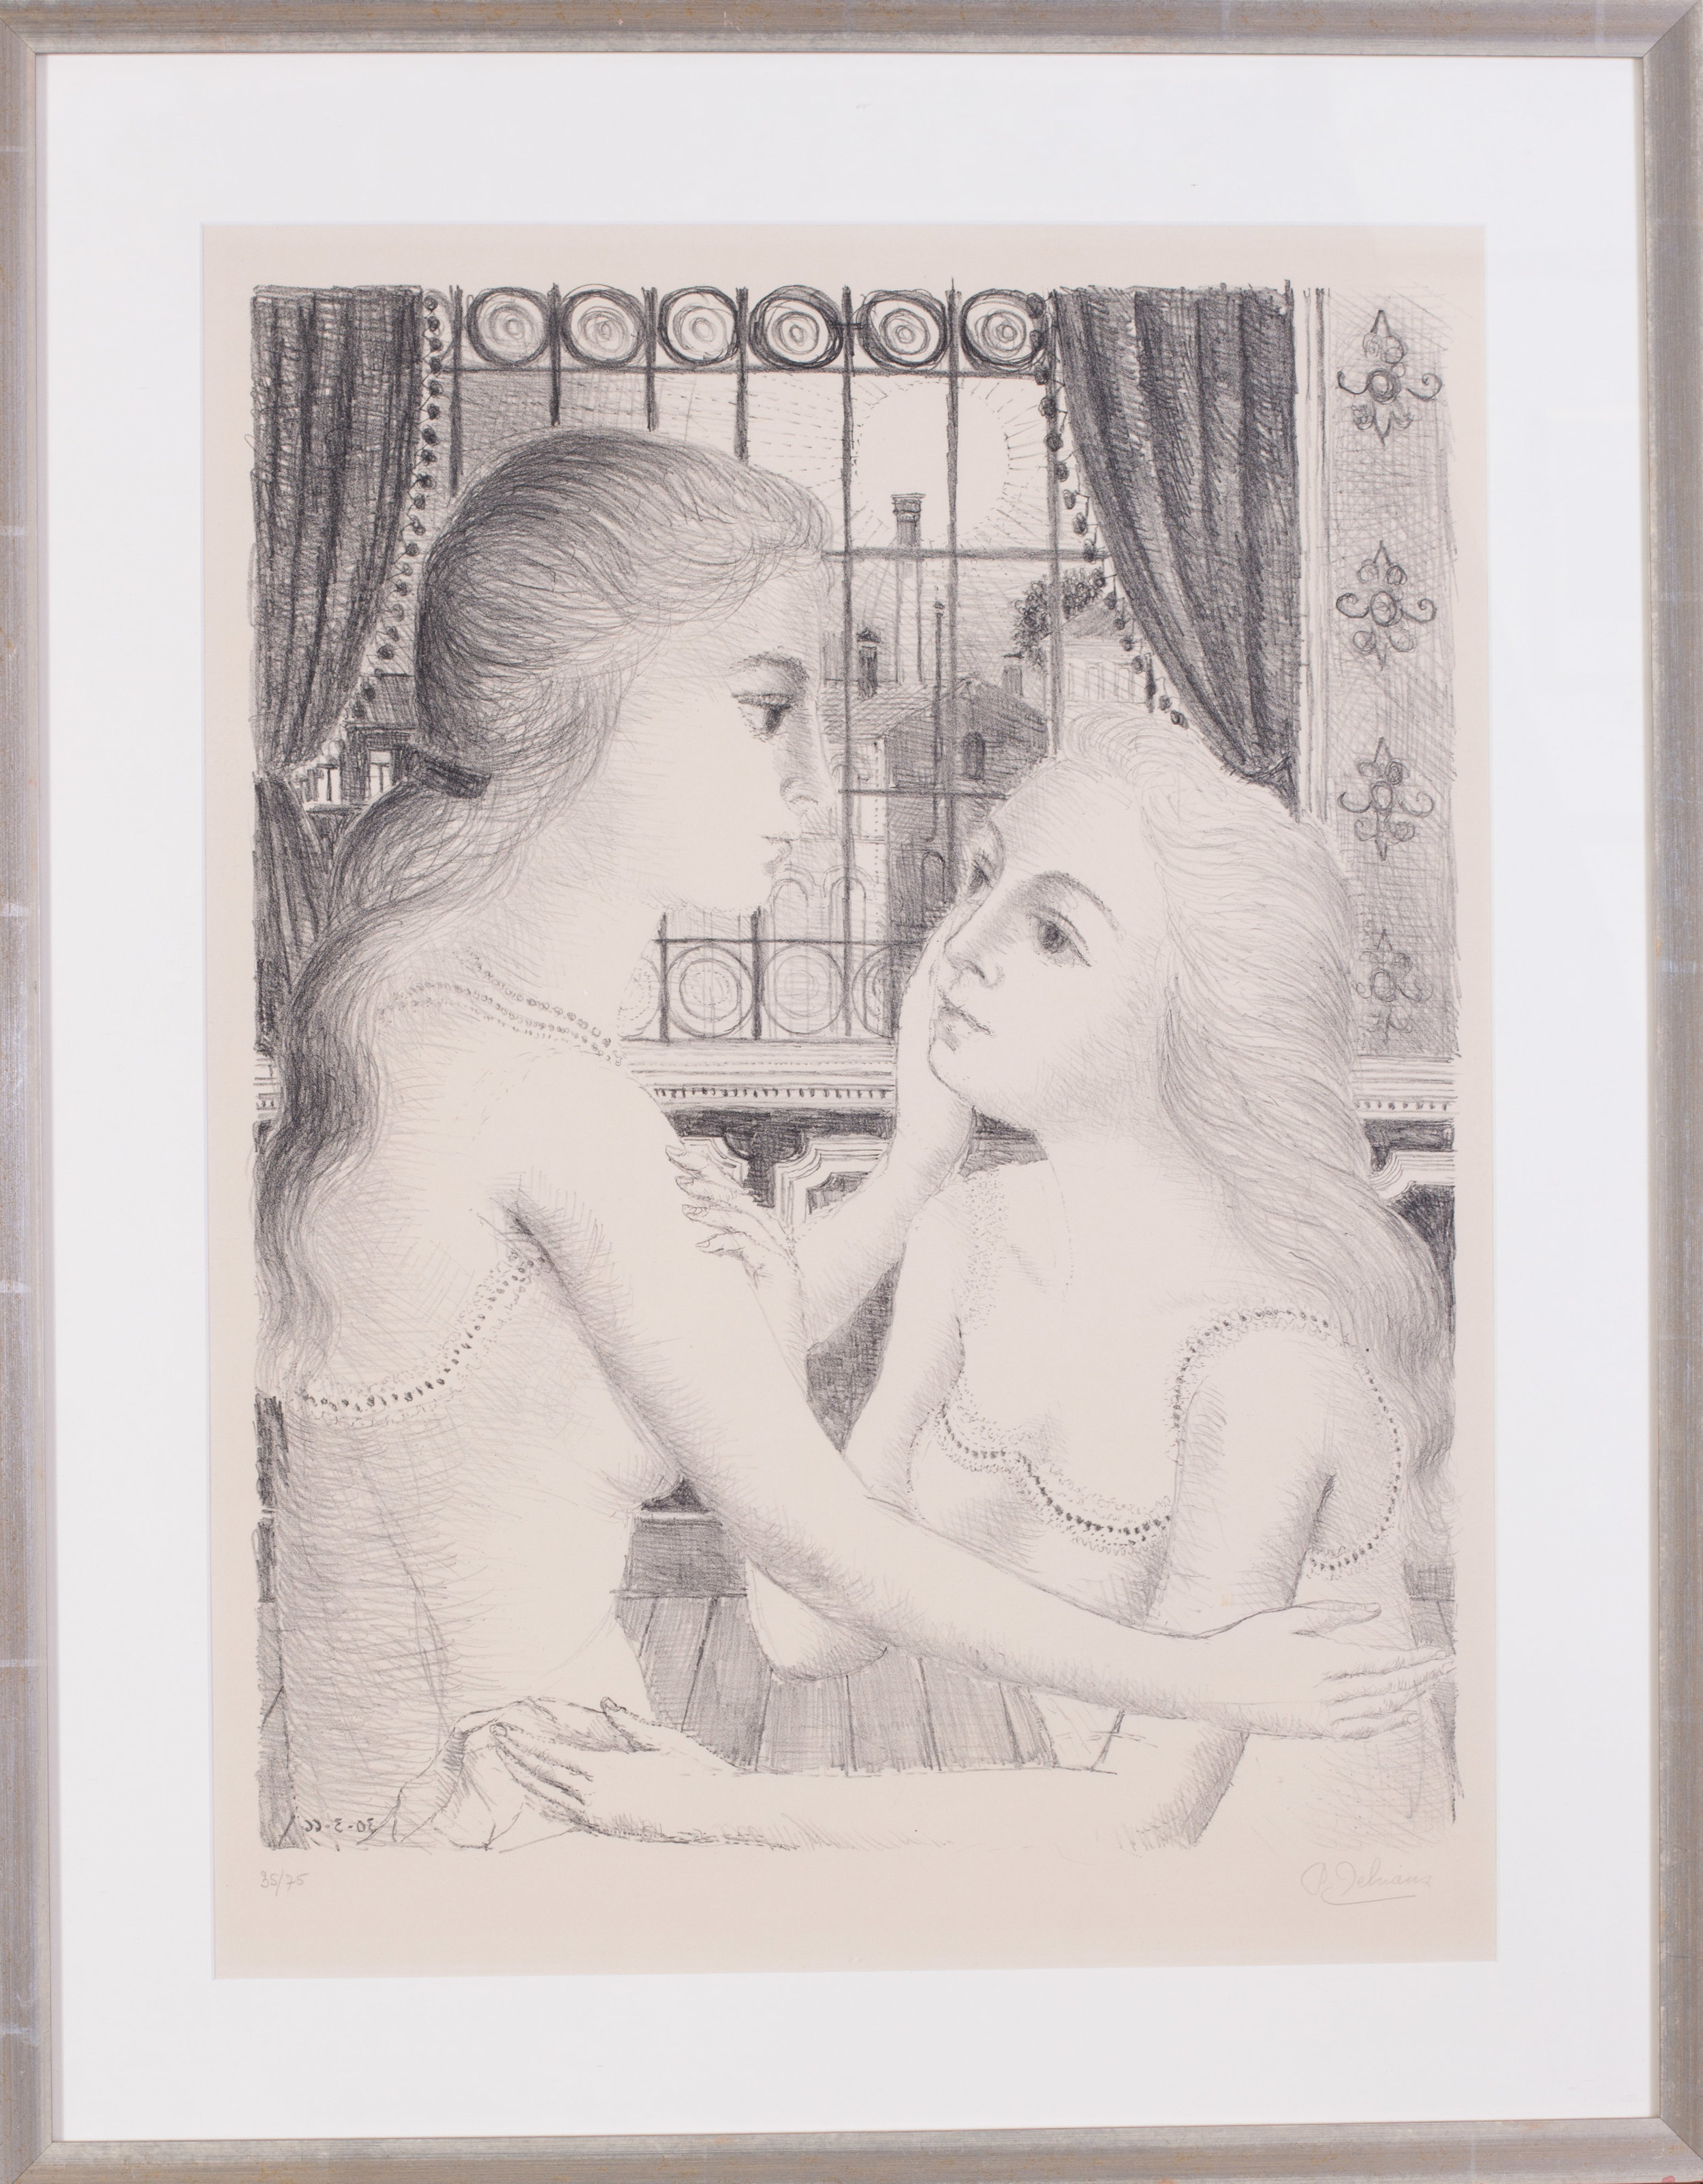 Paul Delvaux (Belgian, 1897 – 1994)    The Secret, 1966   Signed and numbered P. Delvaux 35/75 (lower right and left respectively)  Lithograph  28.1/4 x 21in. (71.7 x 53cm.) (to mount edge)   Price: £3,900